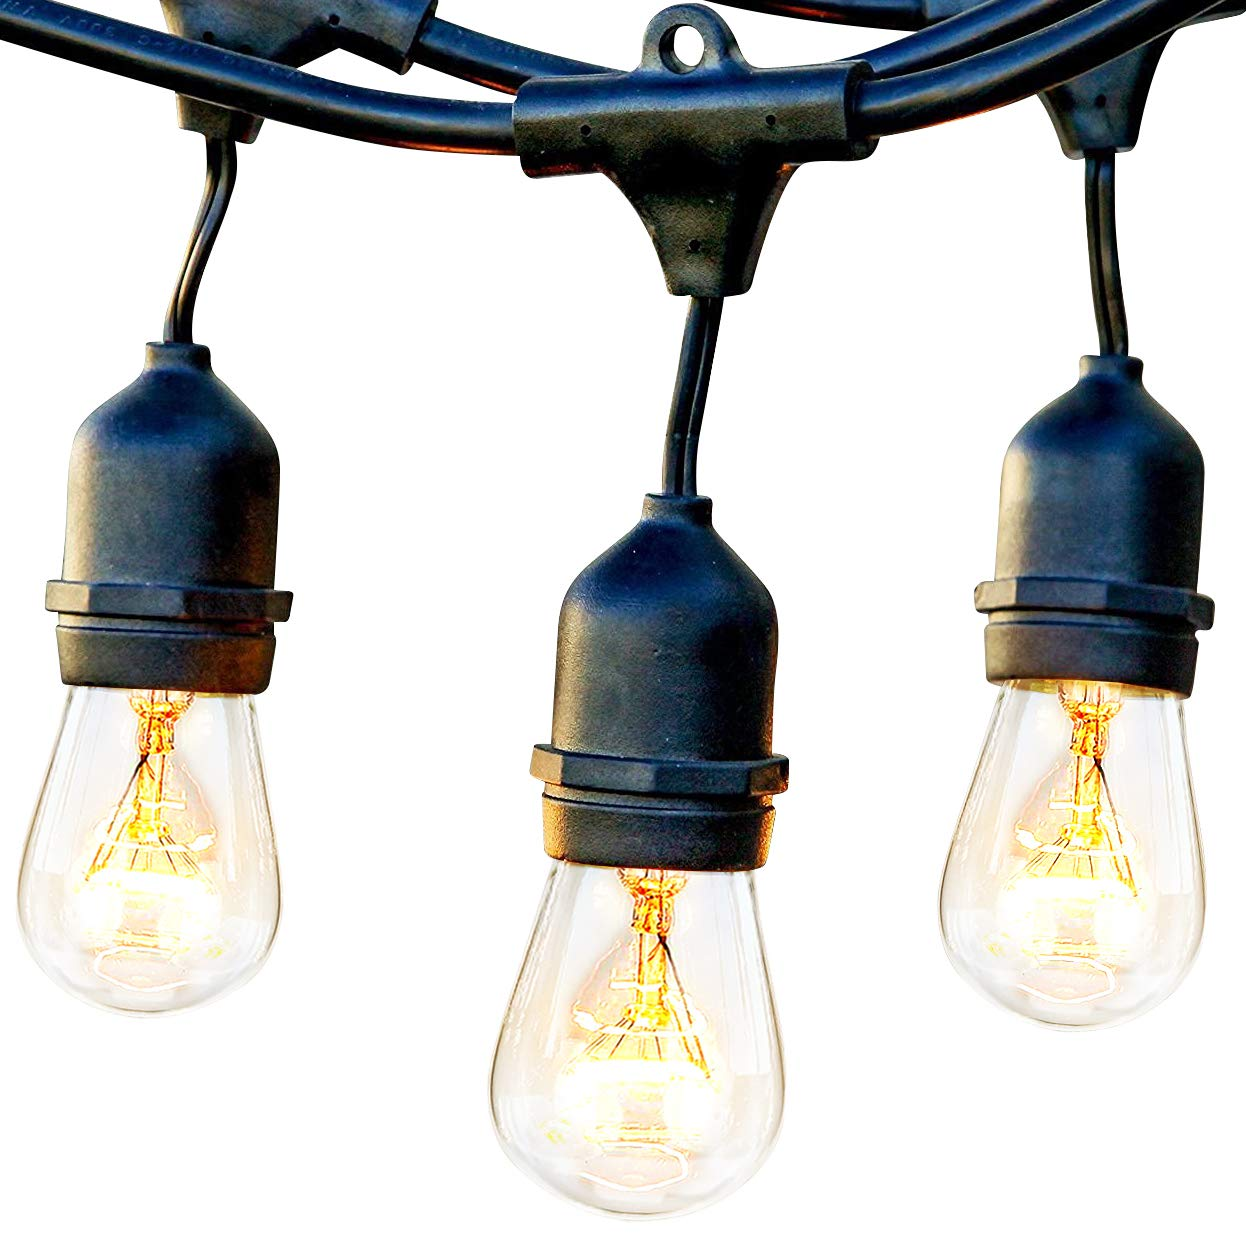 Brightech Ambience Pro   Waterproof Outdoor String Lights   Hanging Vintage  11W Edison Bulbs   48 Ft Bistro Lights Create Great Ambience In Your  Backyard, ...